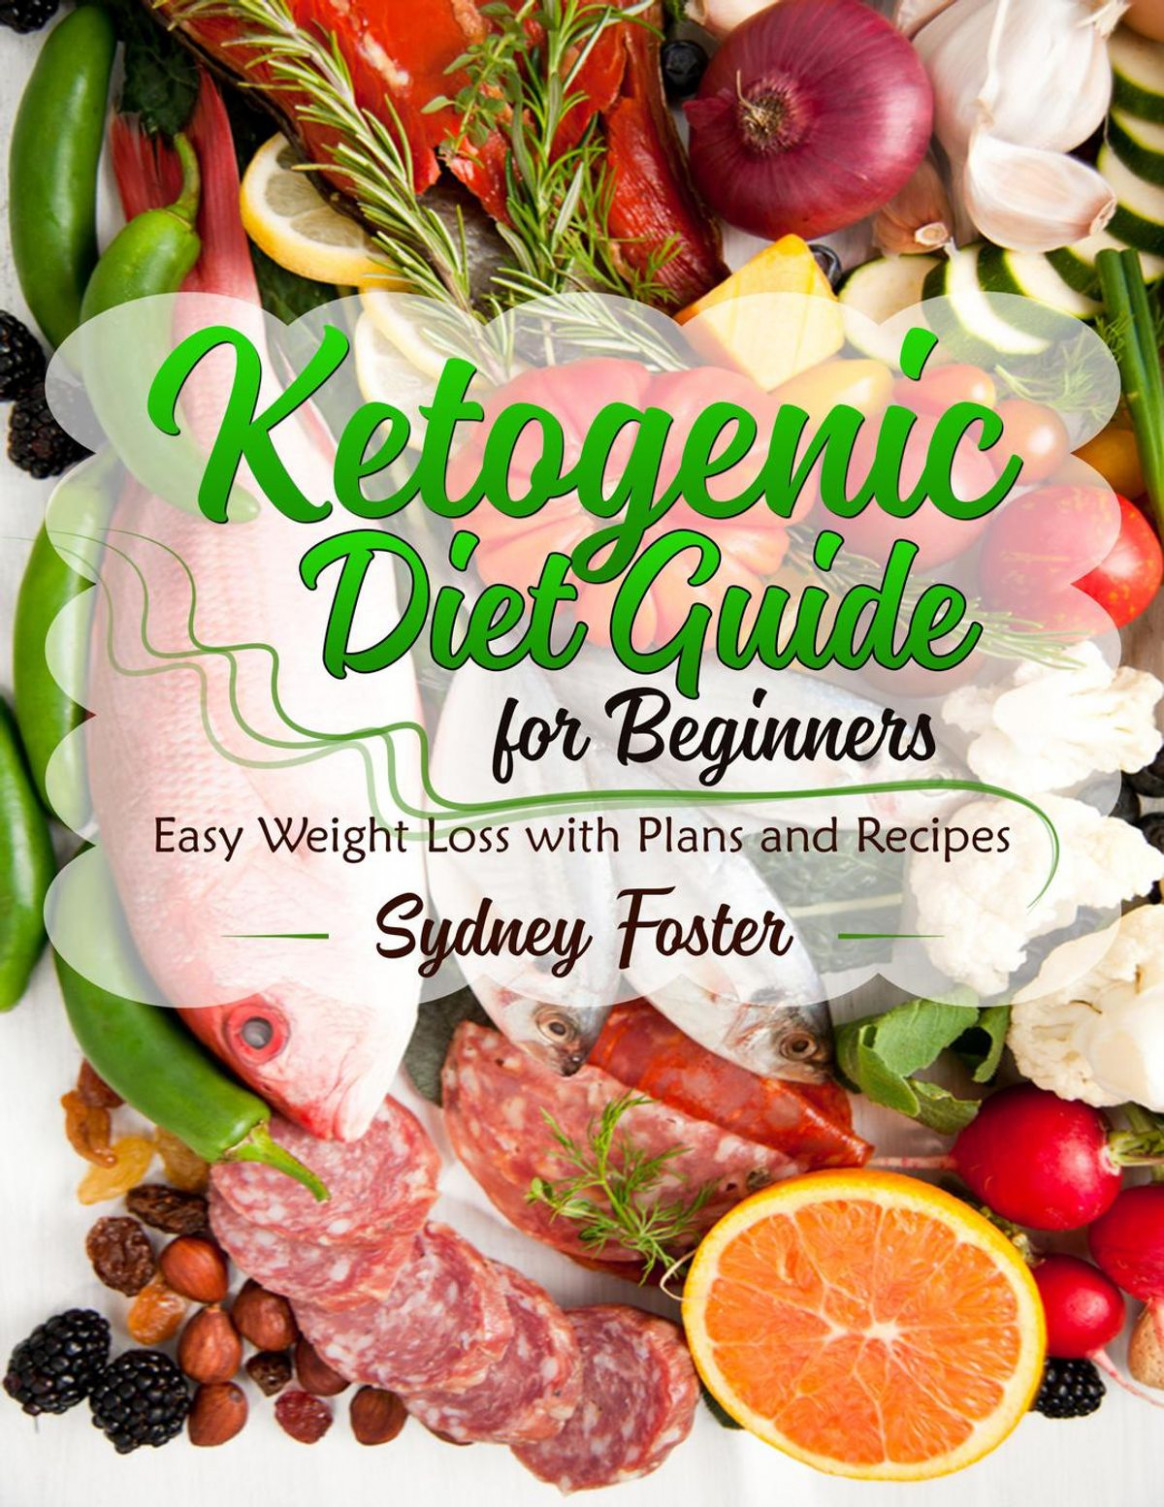 Ketogenic Diet Guide for Beginners: Easy Weight Loss with Plans and Recipes  (Keto Cookbook, Complete Lifestyle Plan) ebook by Sydney Foster - Rakuten  ..